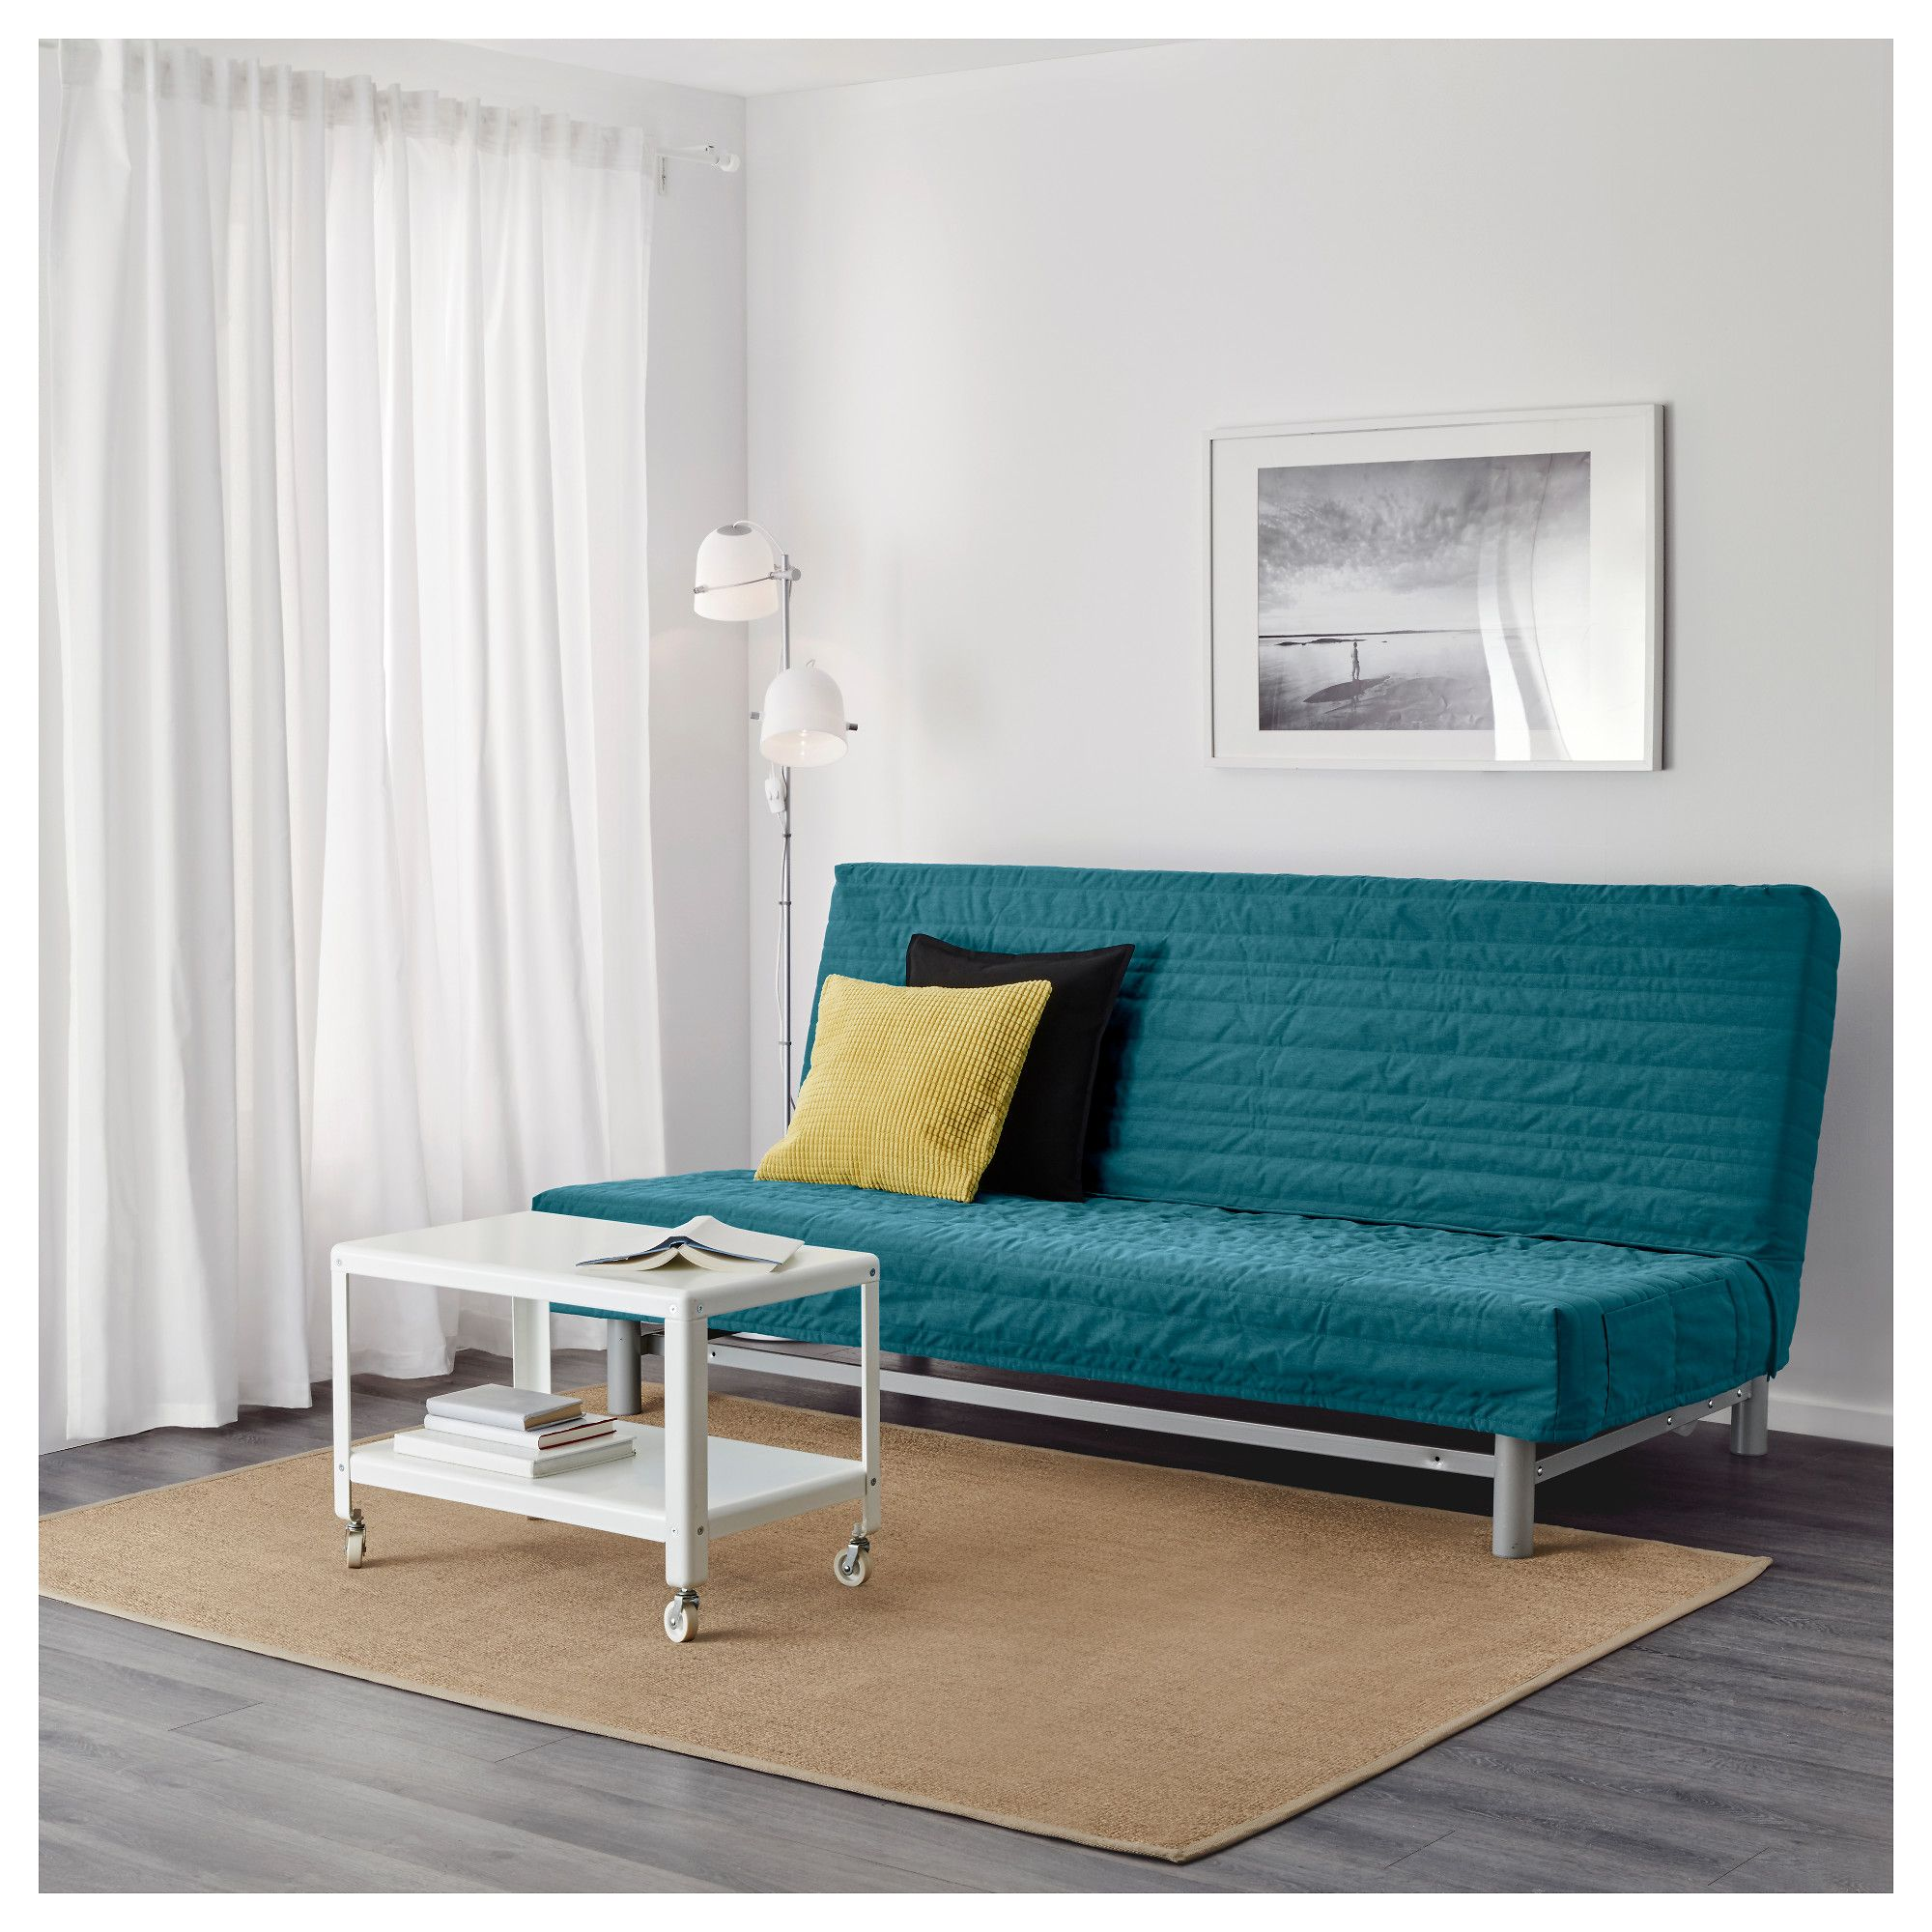 Ikea Beddinge LÖvÅs Three Seat Sofa Bed Readily Converts Into A Enough For Two